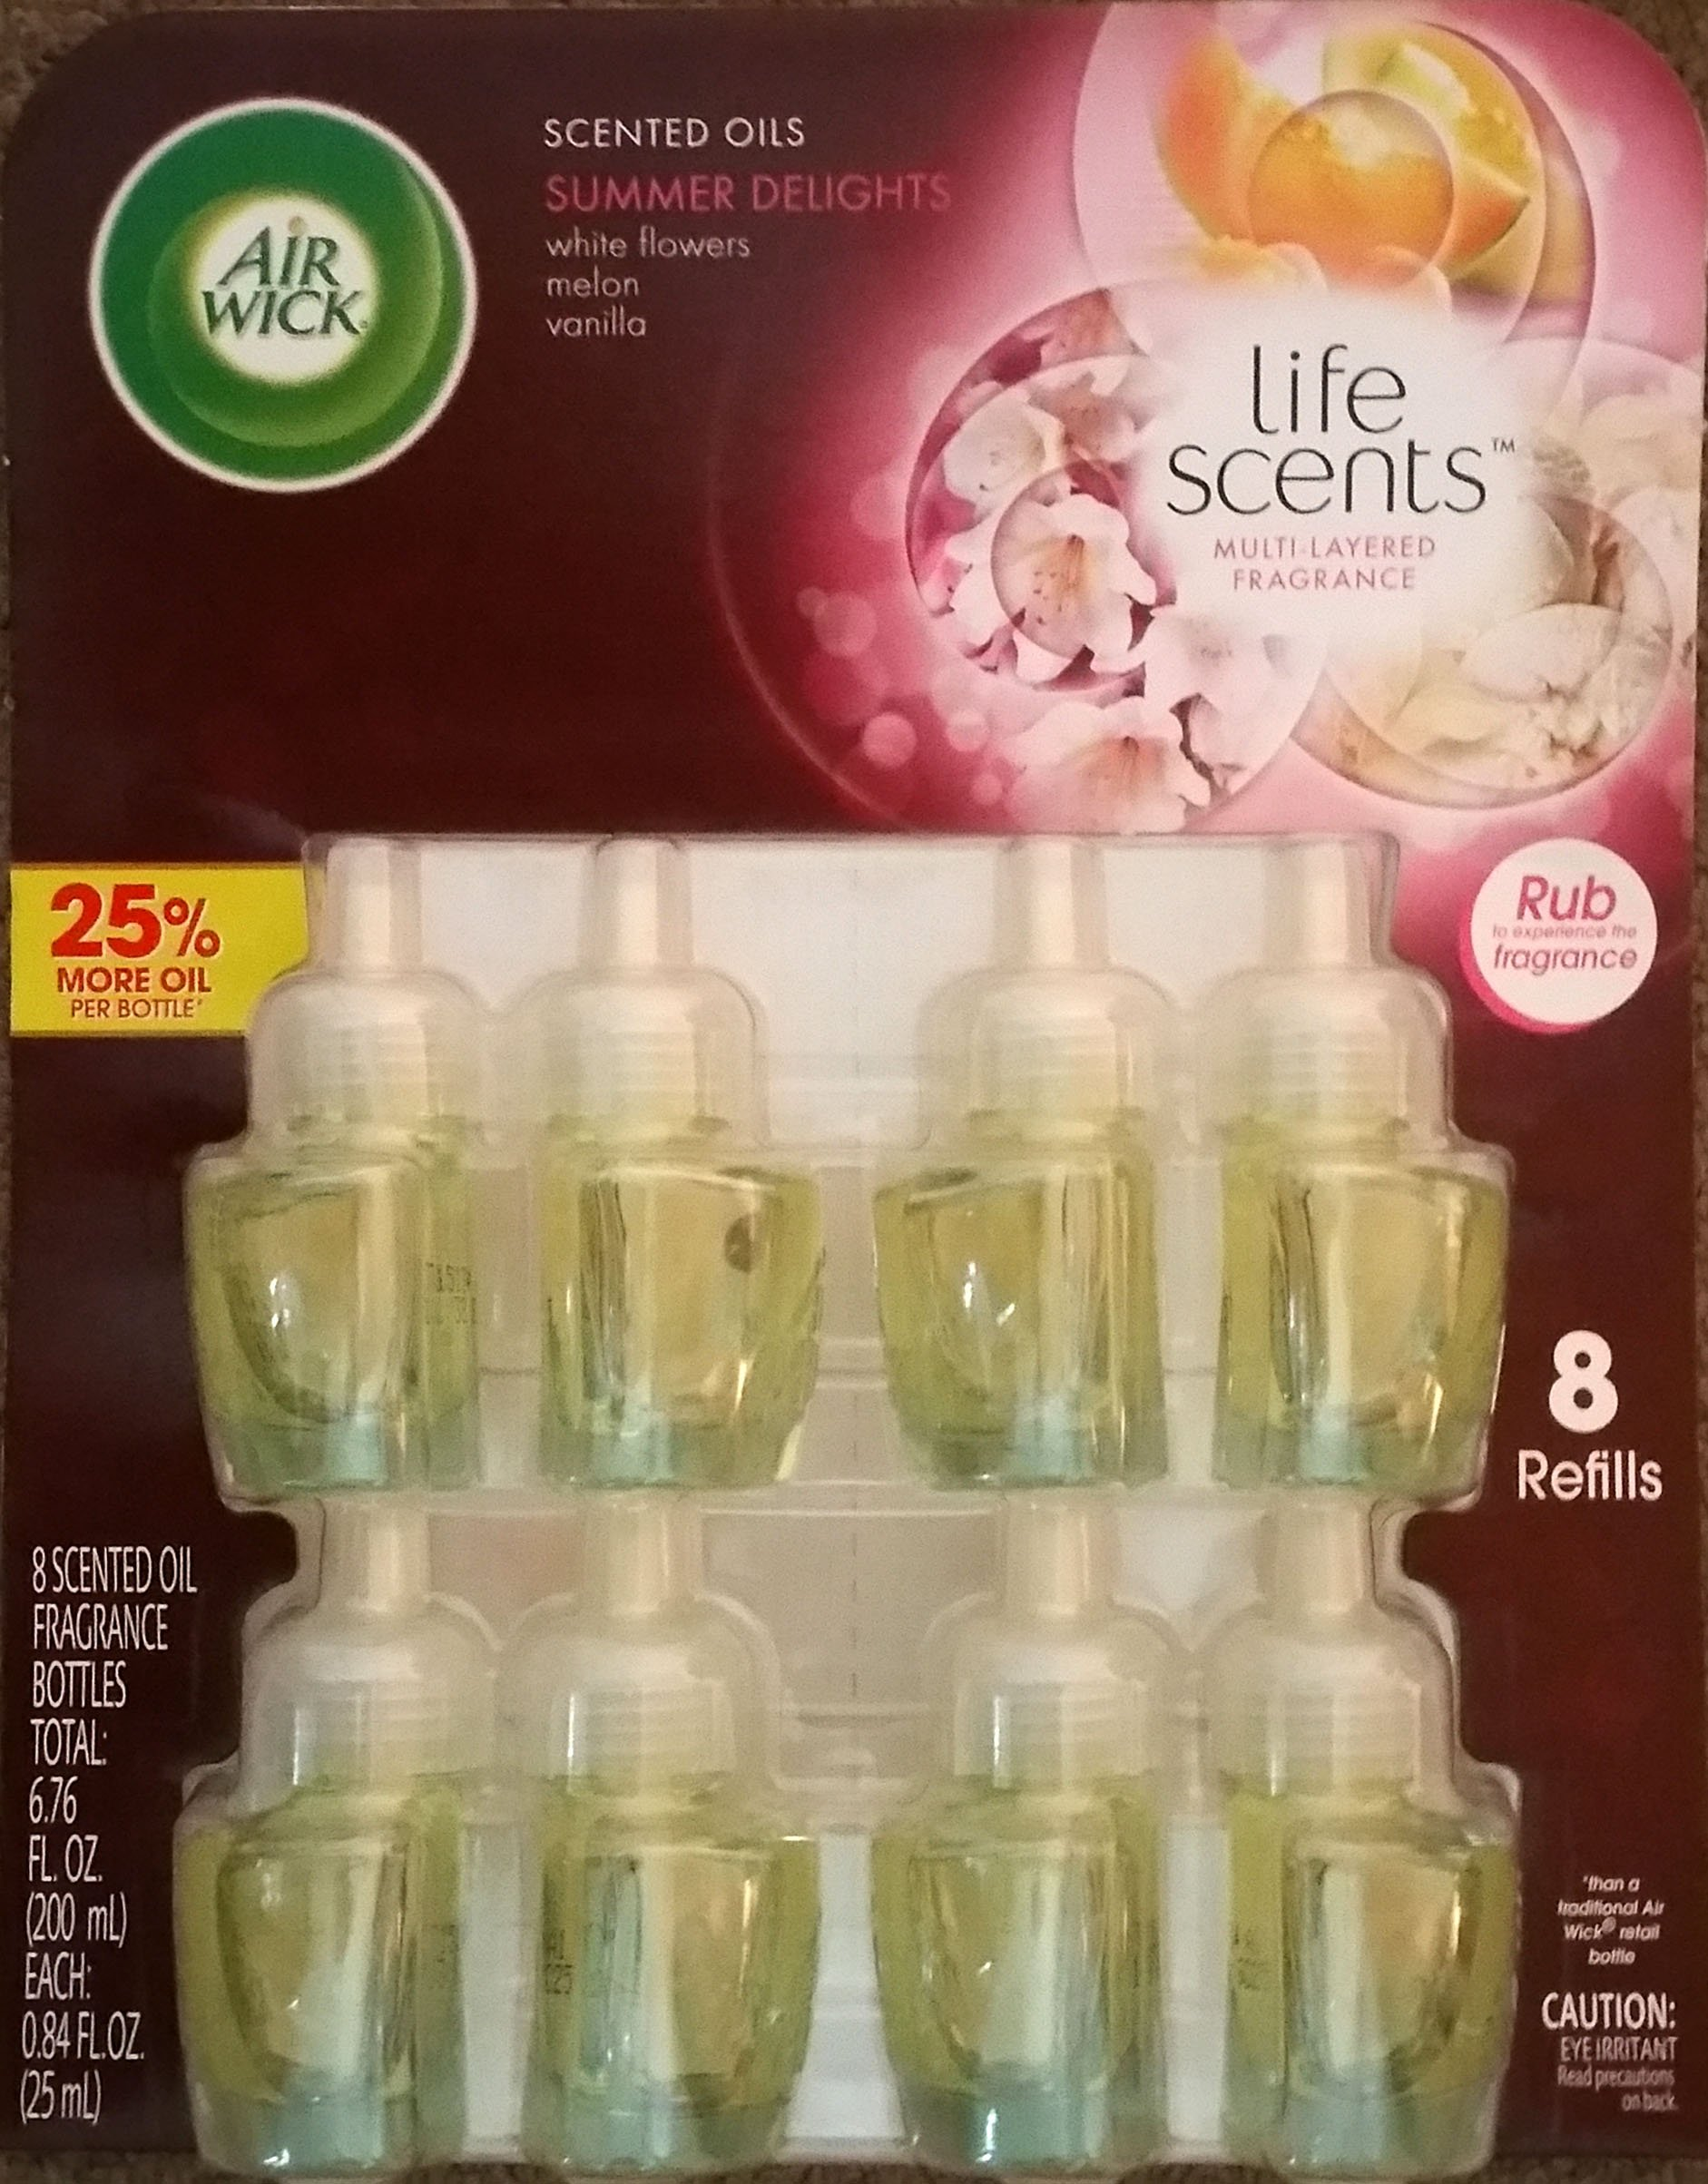 Air Wick Scented Oil Refills Life Scents Collection - Summer Delights